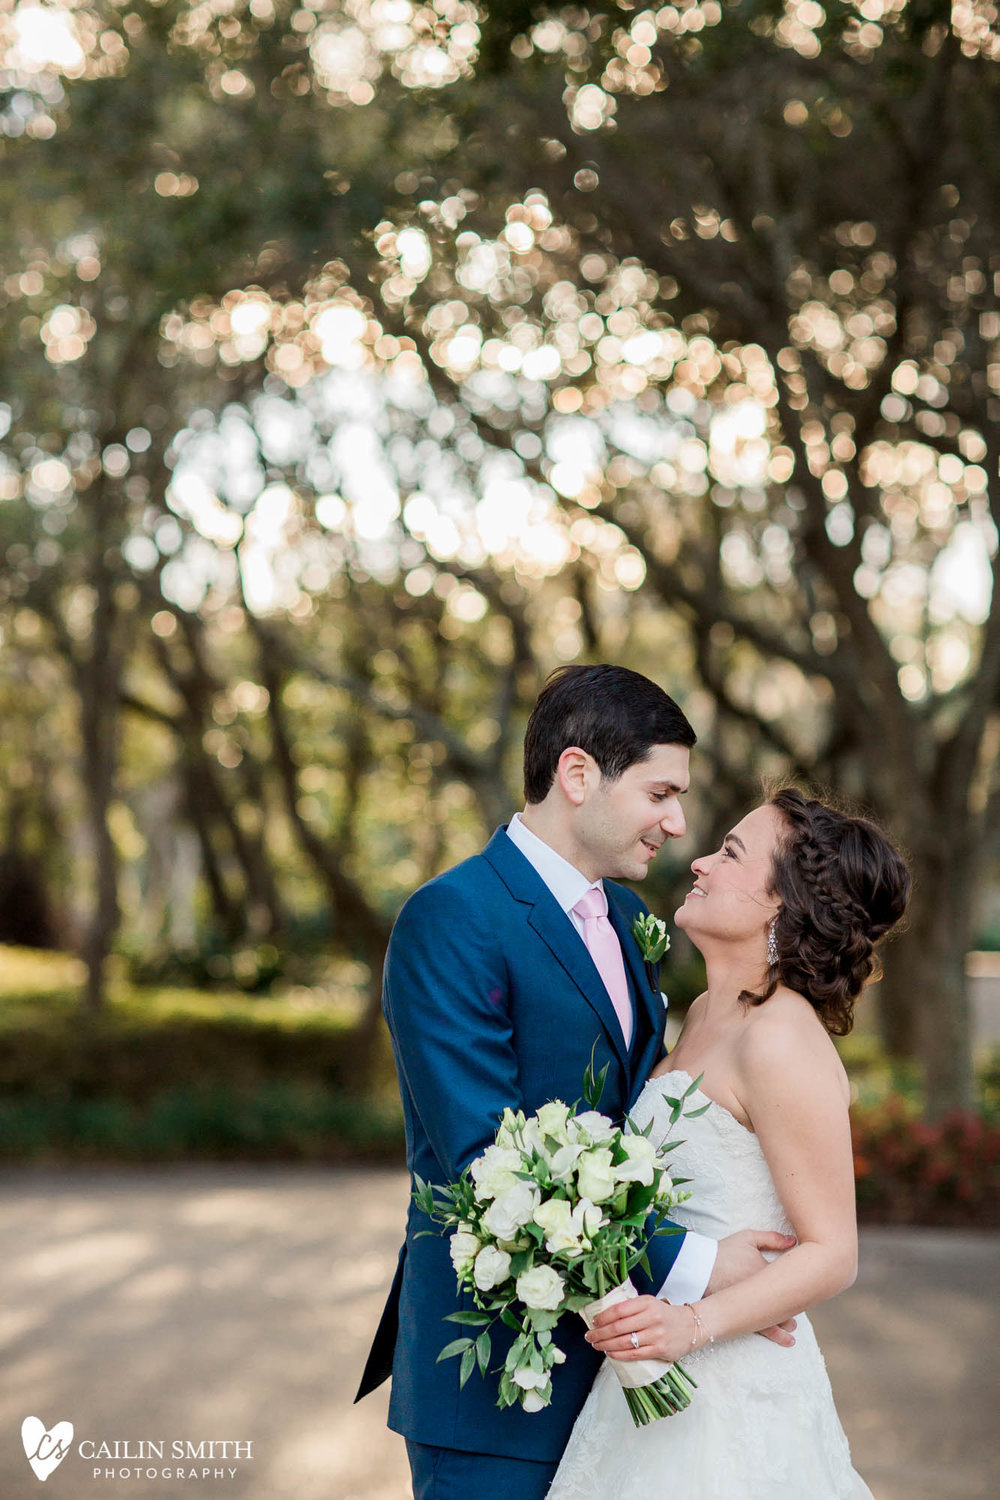 Hallie_Ari_Ritz_Carlton_Amelia_Island_Wedding_Photography_0050.jpg